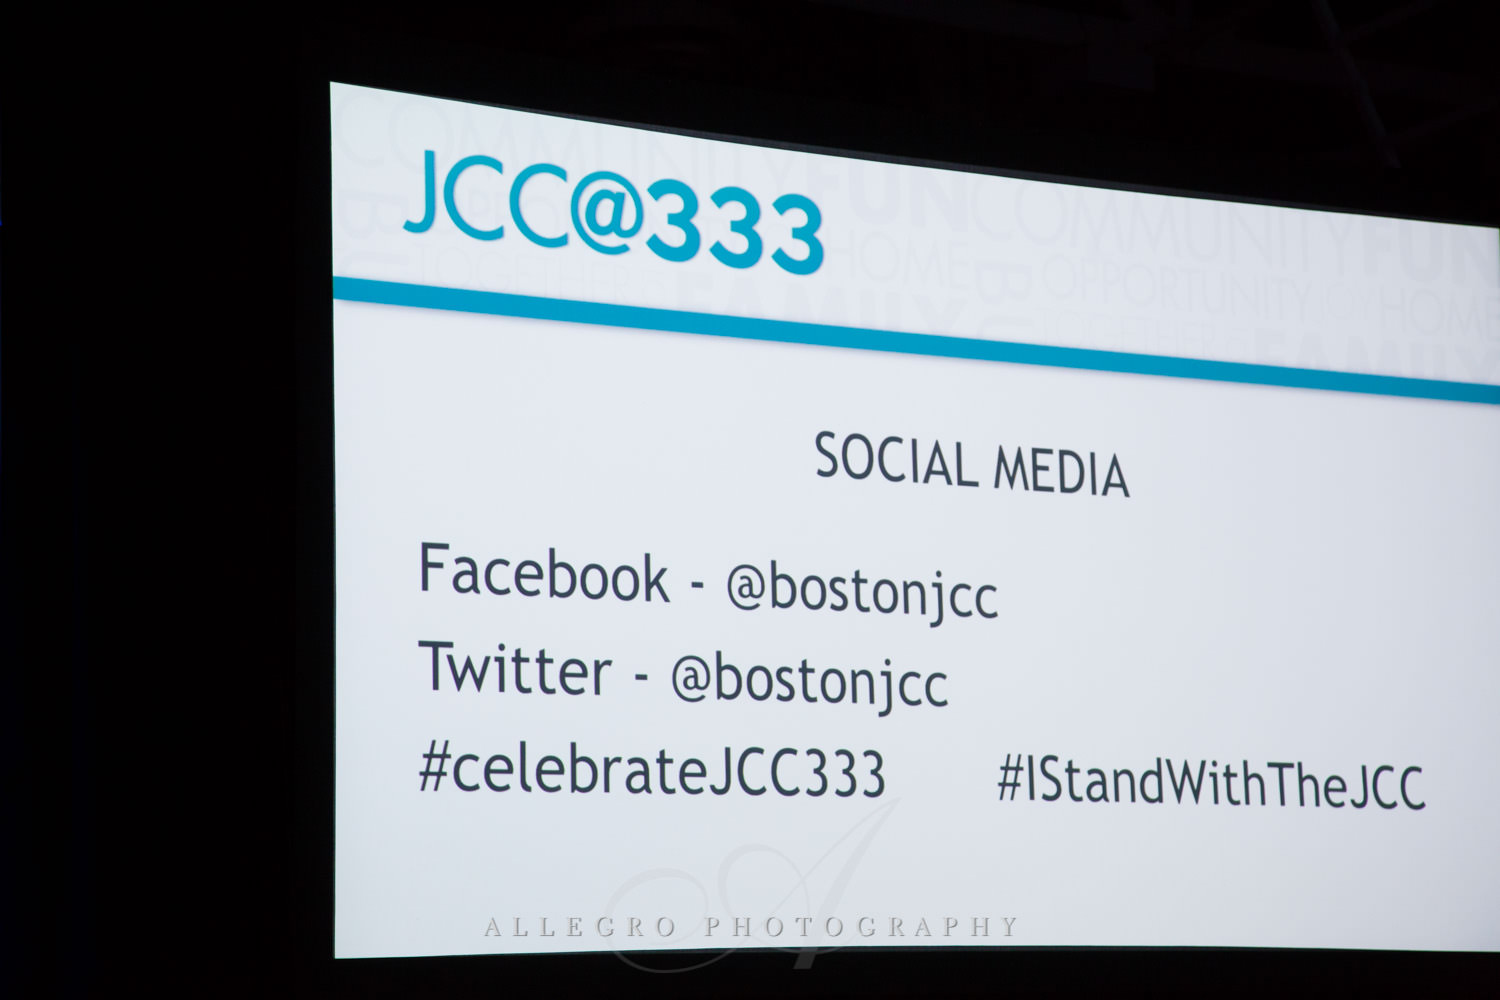 Nonprofit JCC@333 social media sites photographed by Allegro Photography